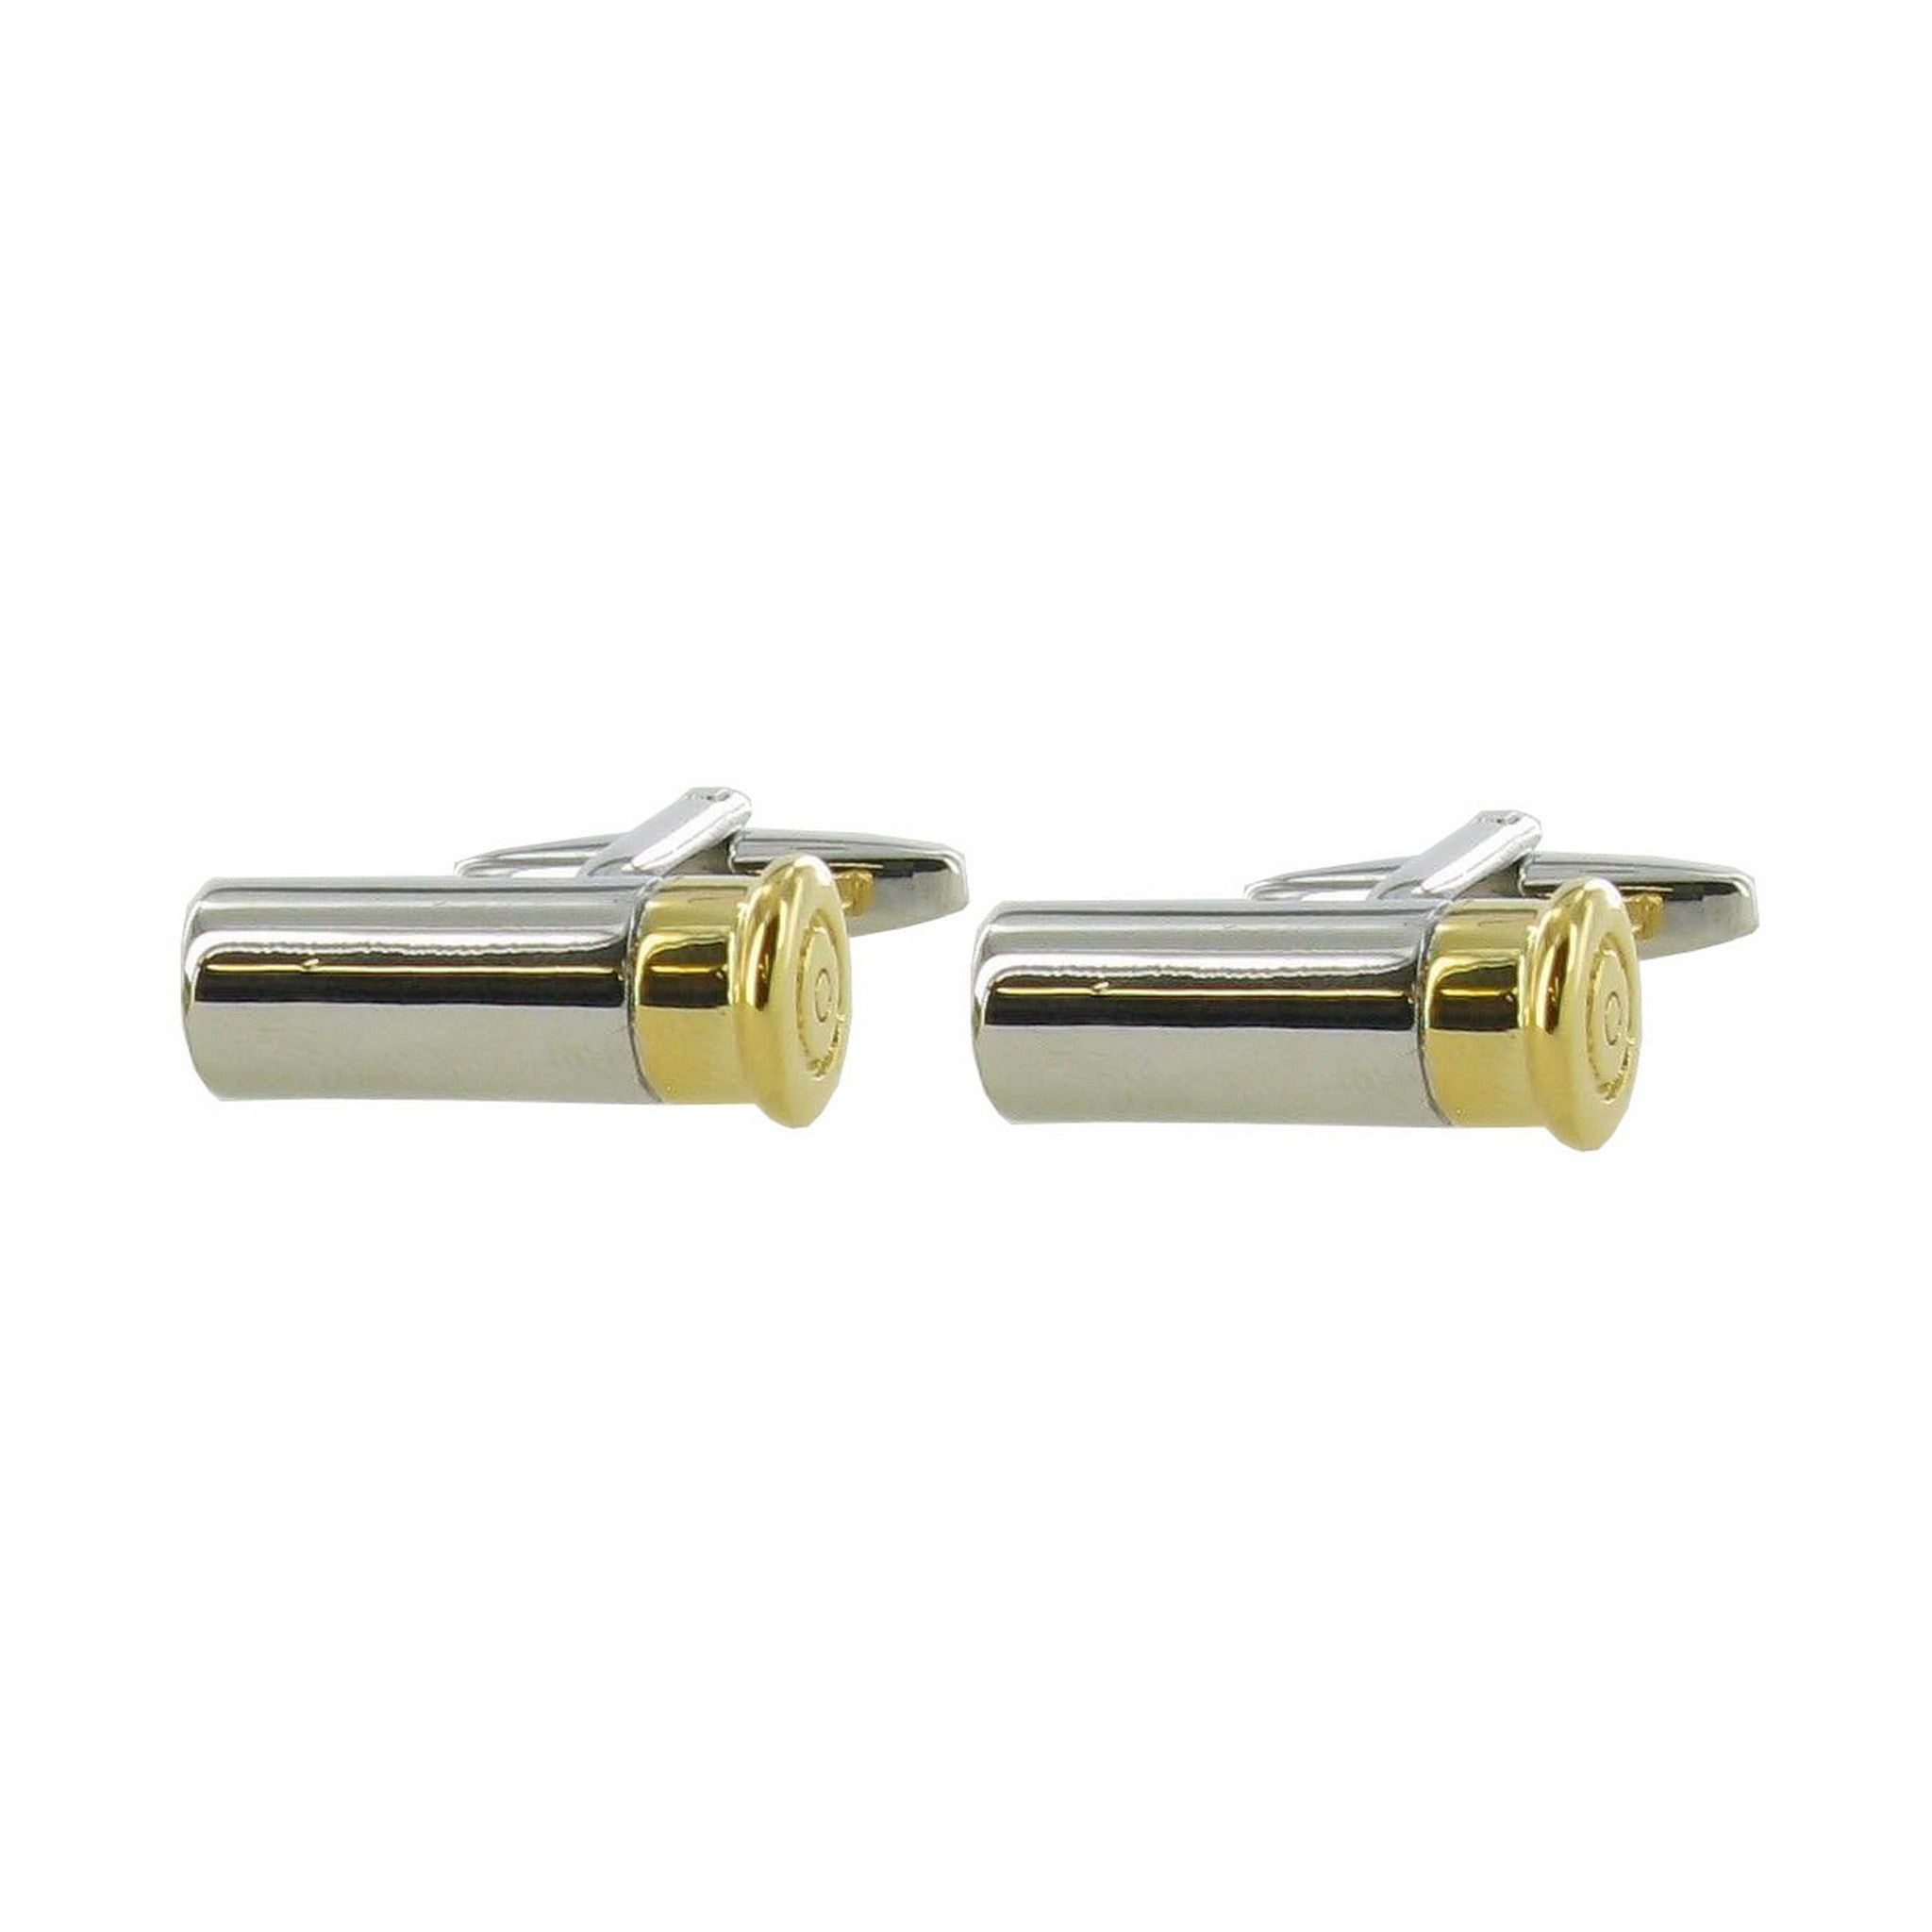 Cartridges Cuff Links